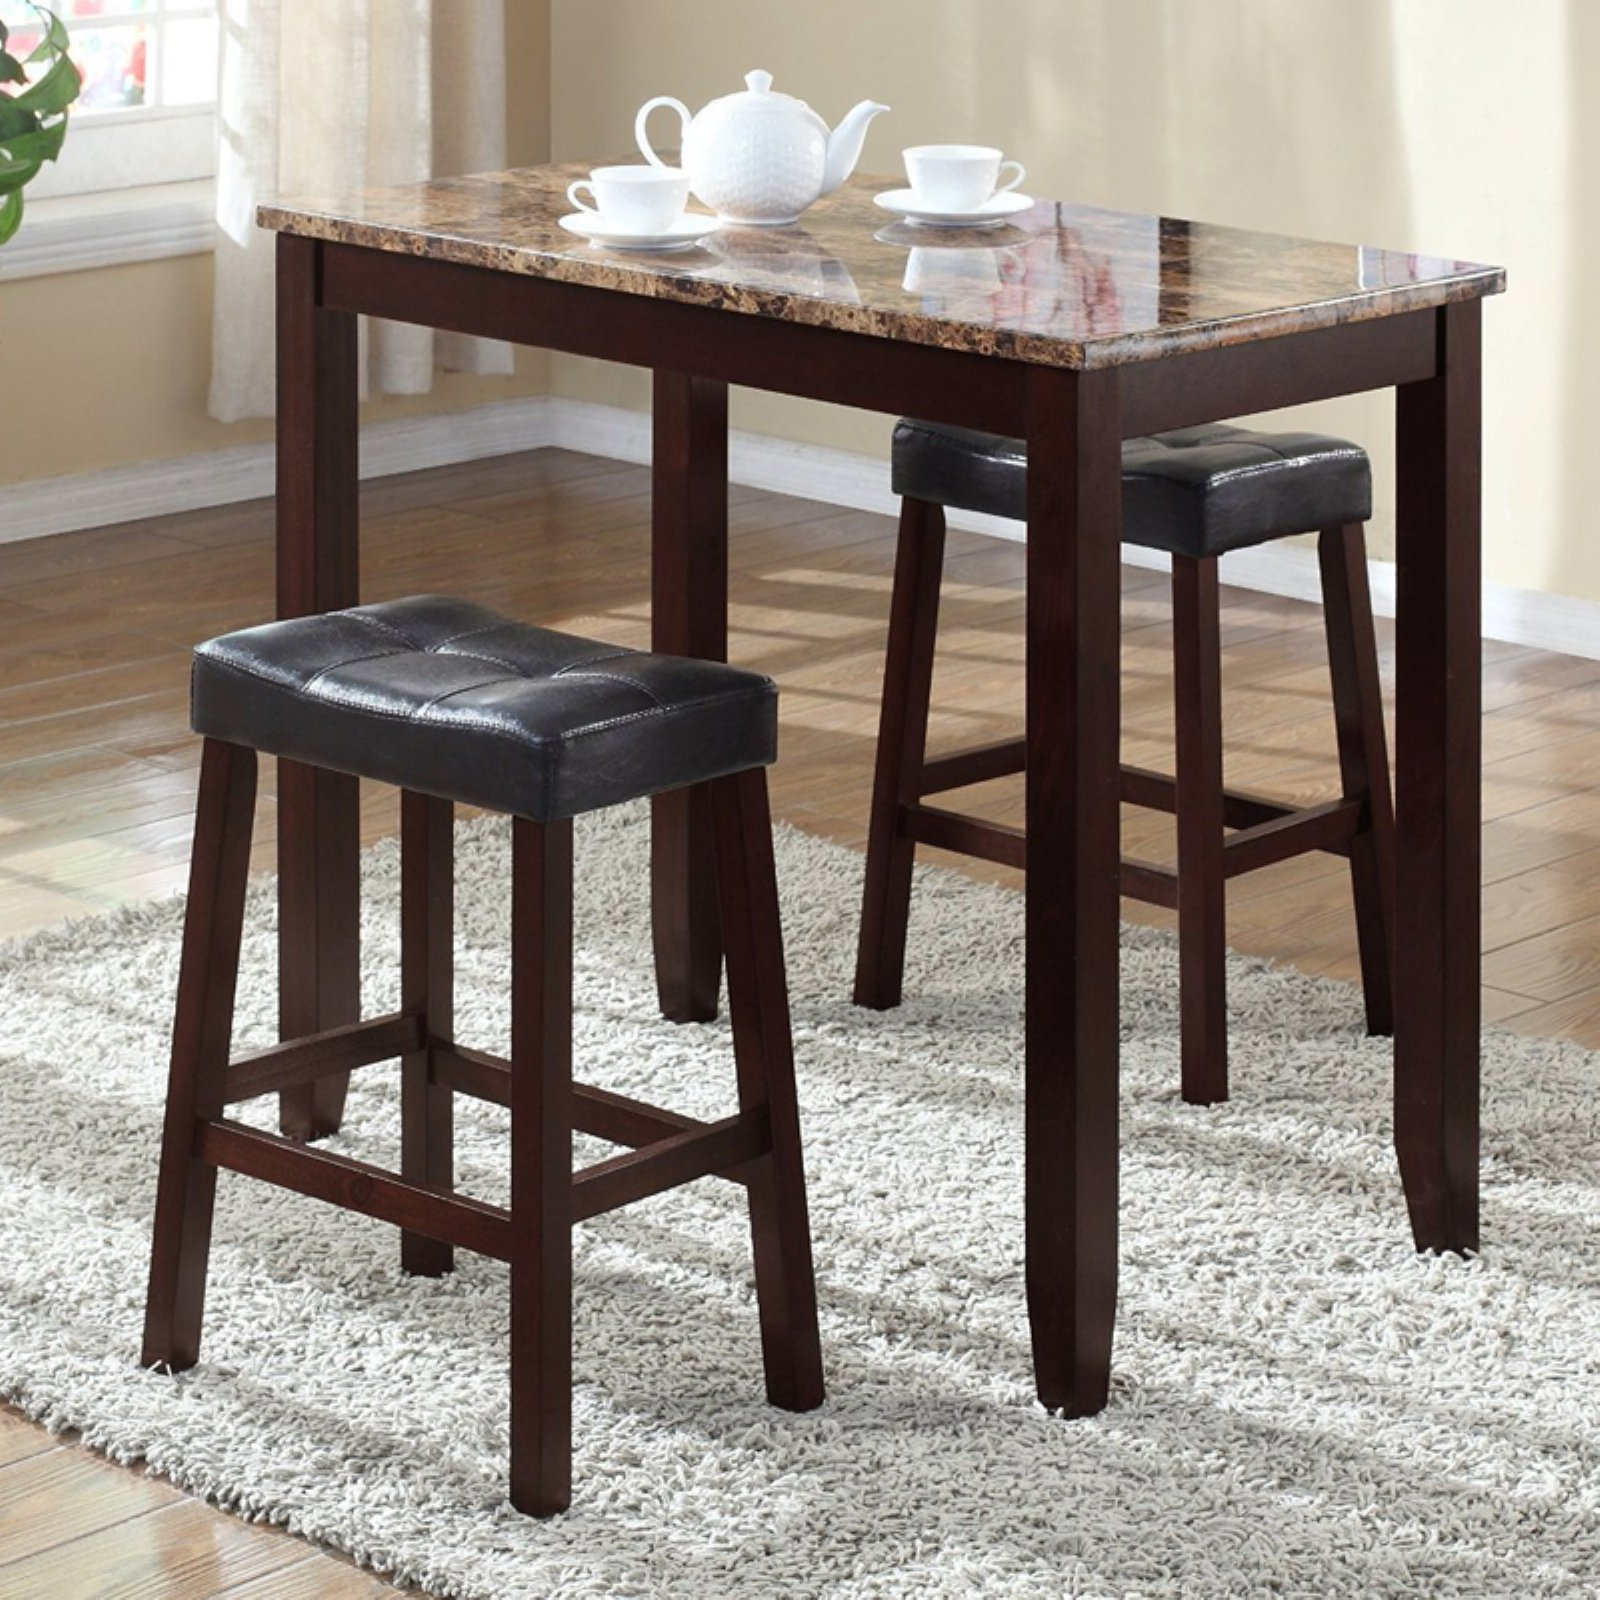 Roundhill Furniture 3-Piece Counter Height Glossy Print Marble Breakfast Table with Stools